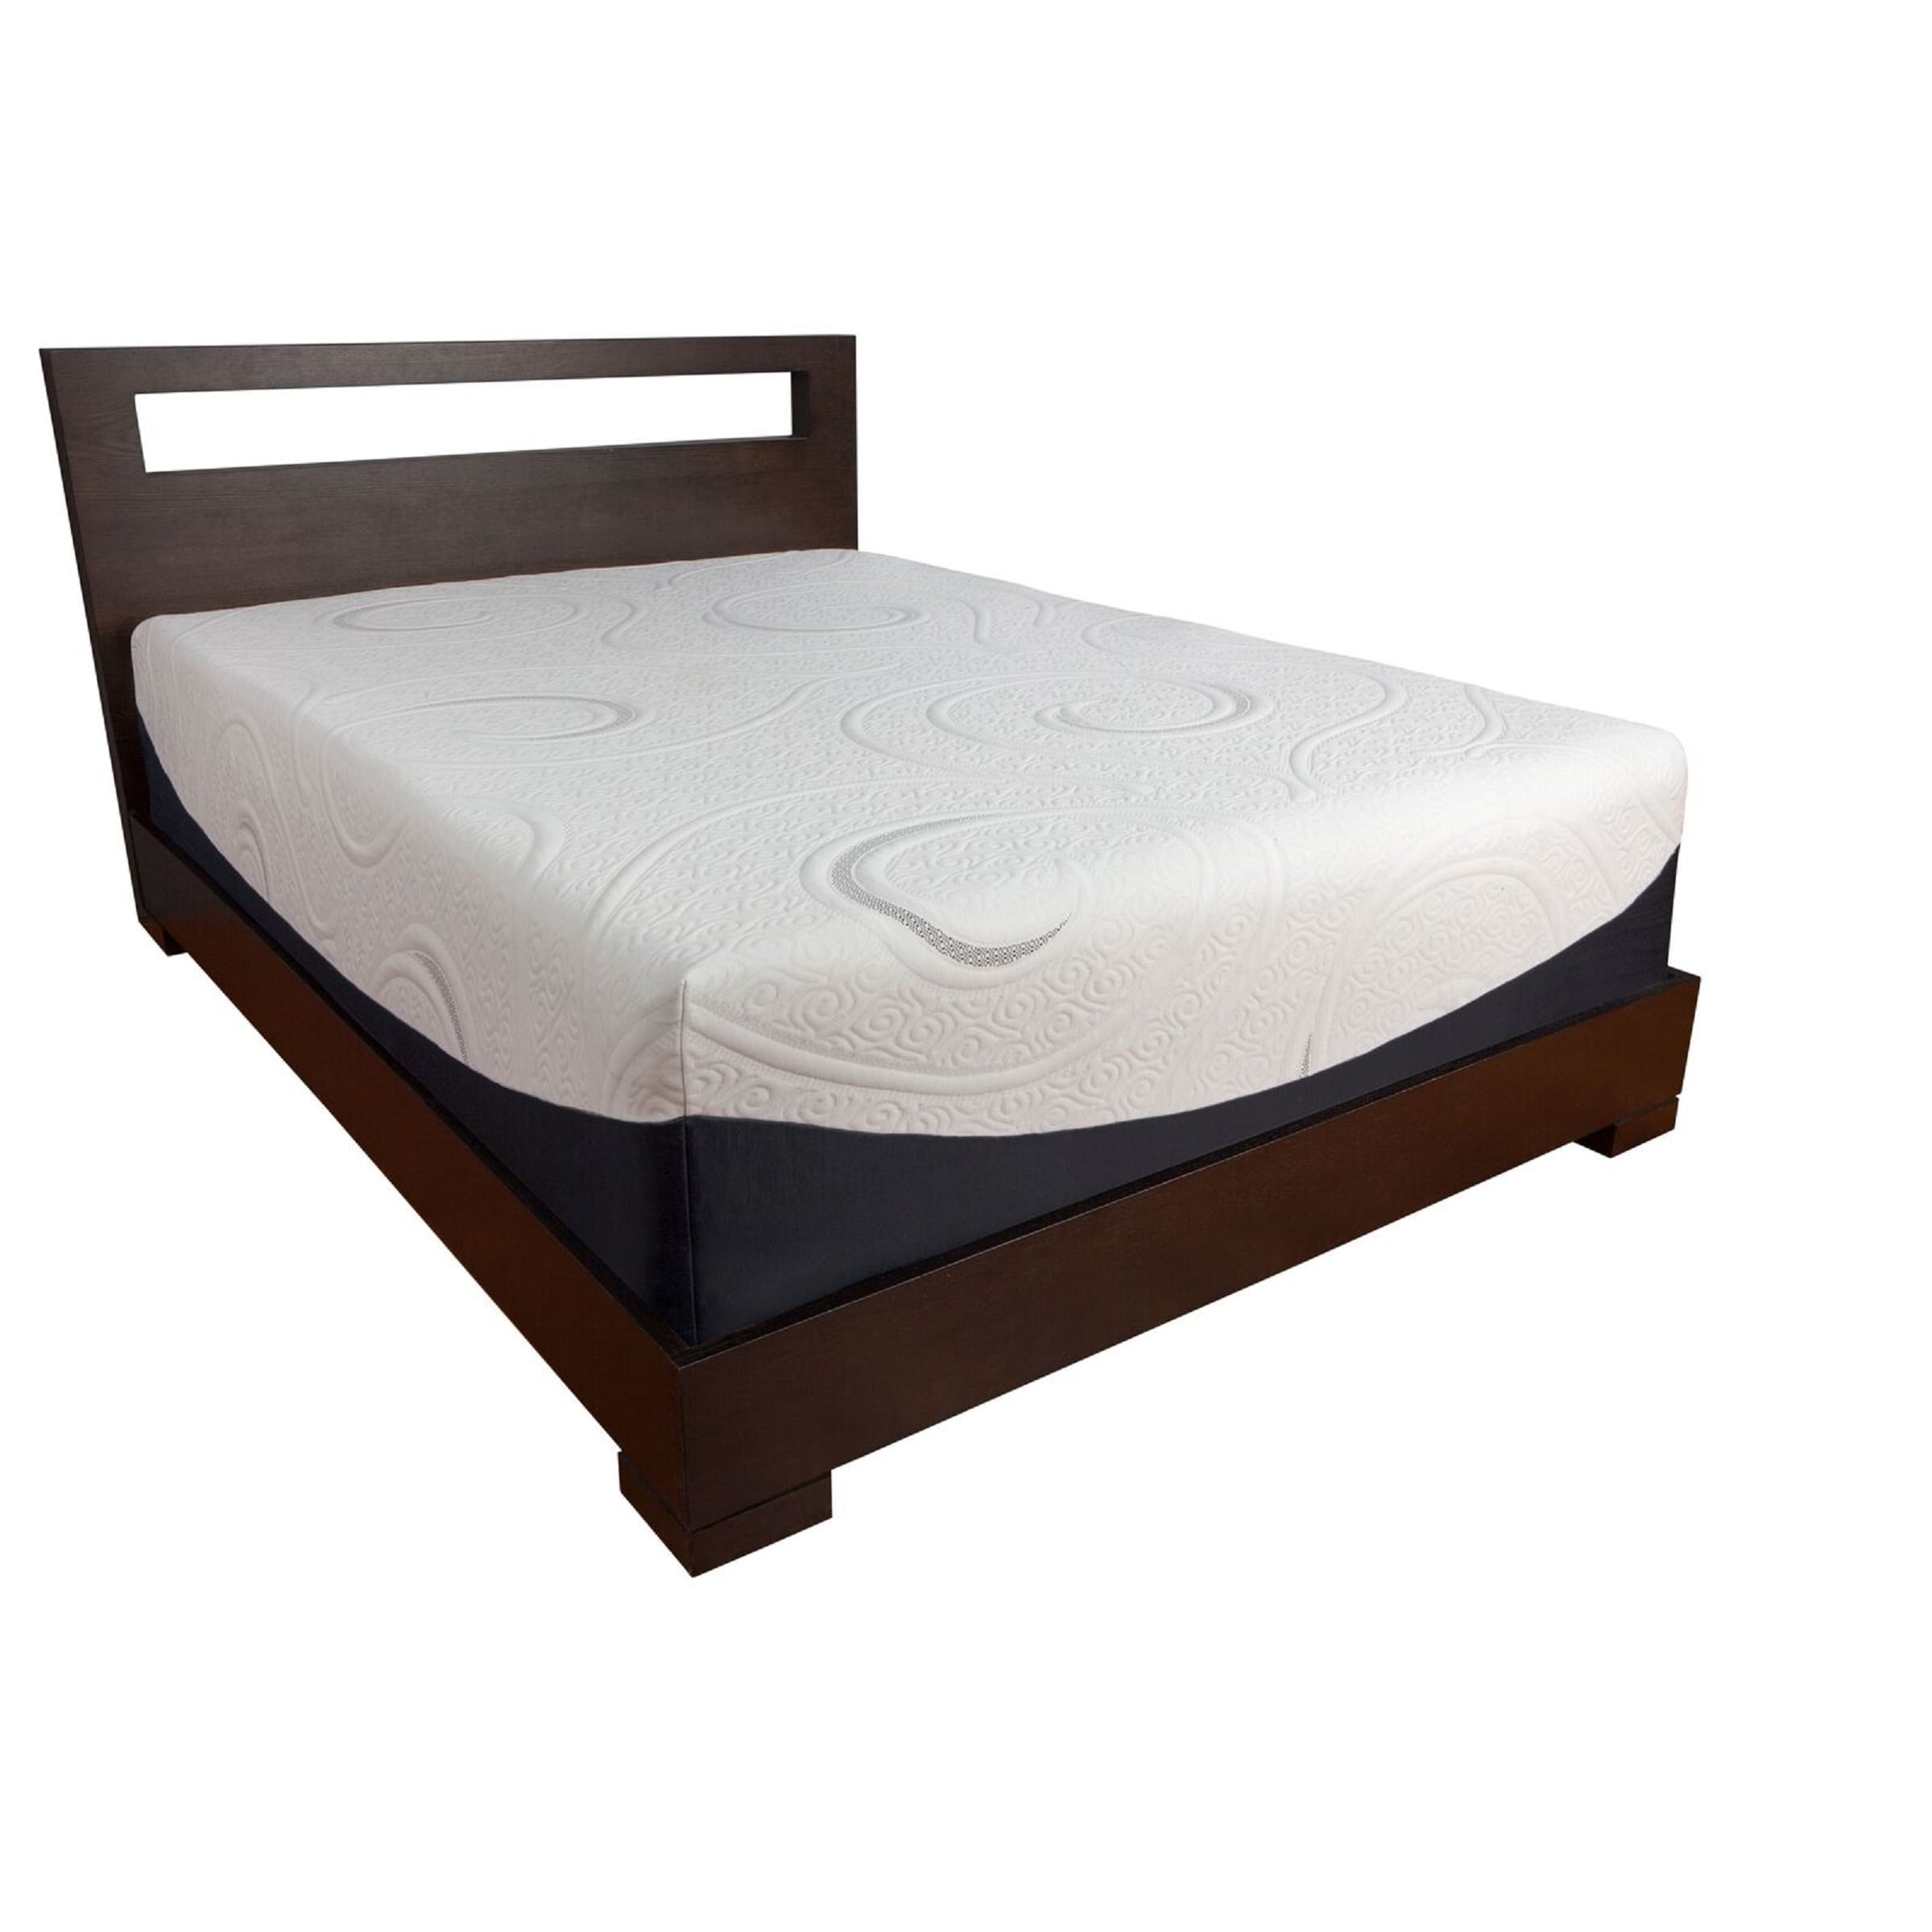 size shipping overstock free sealy today hybrid mattress home inch garden product queen